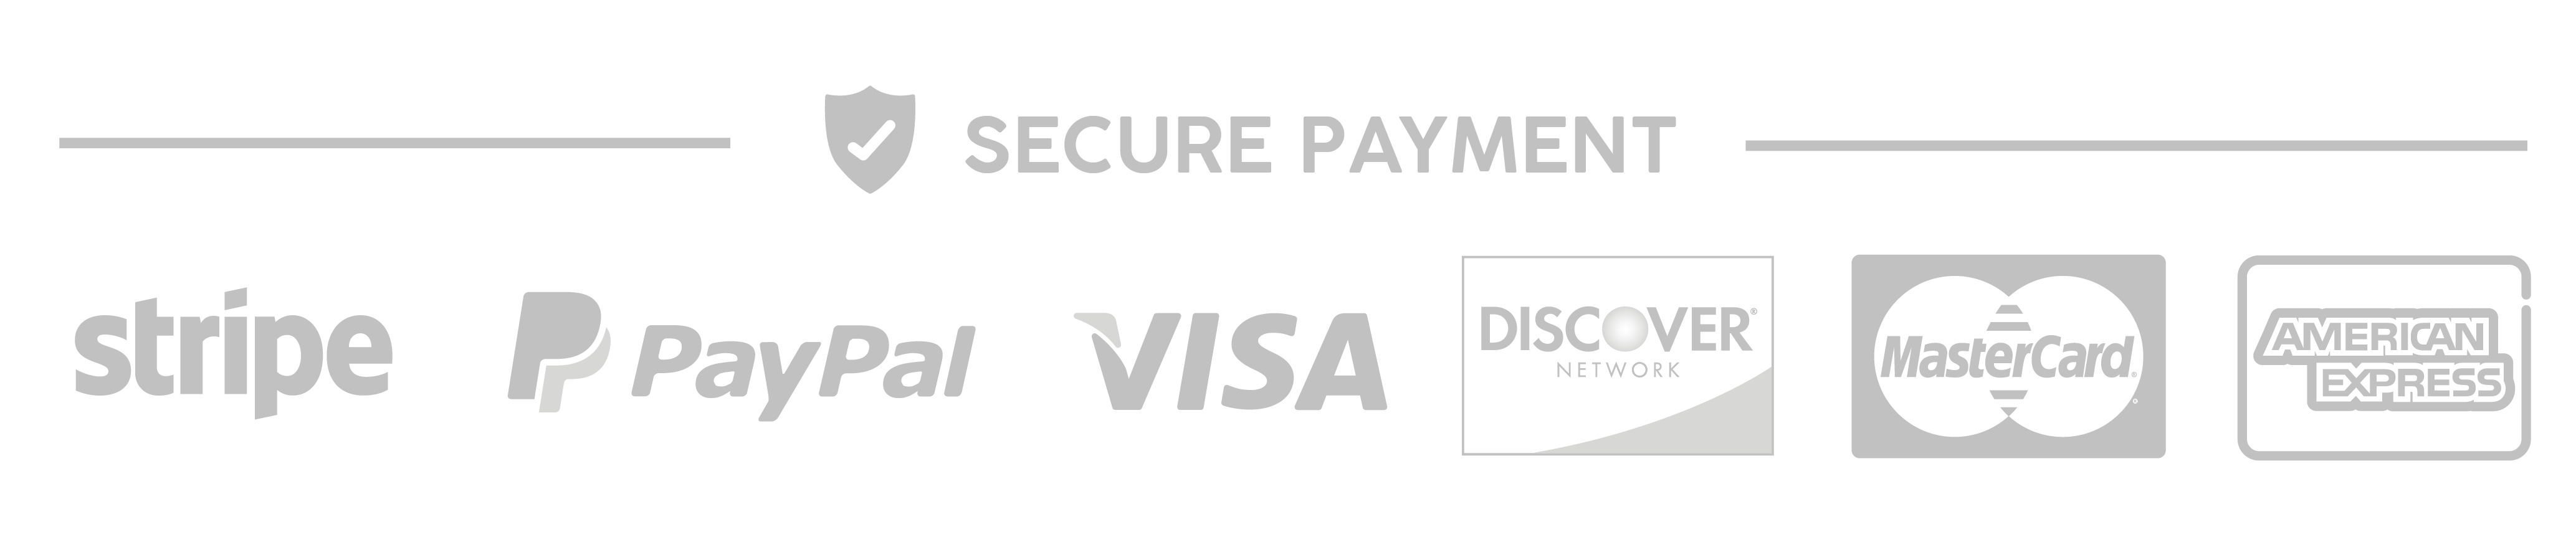 secure payment 04 1